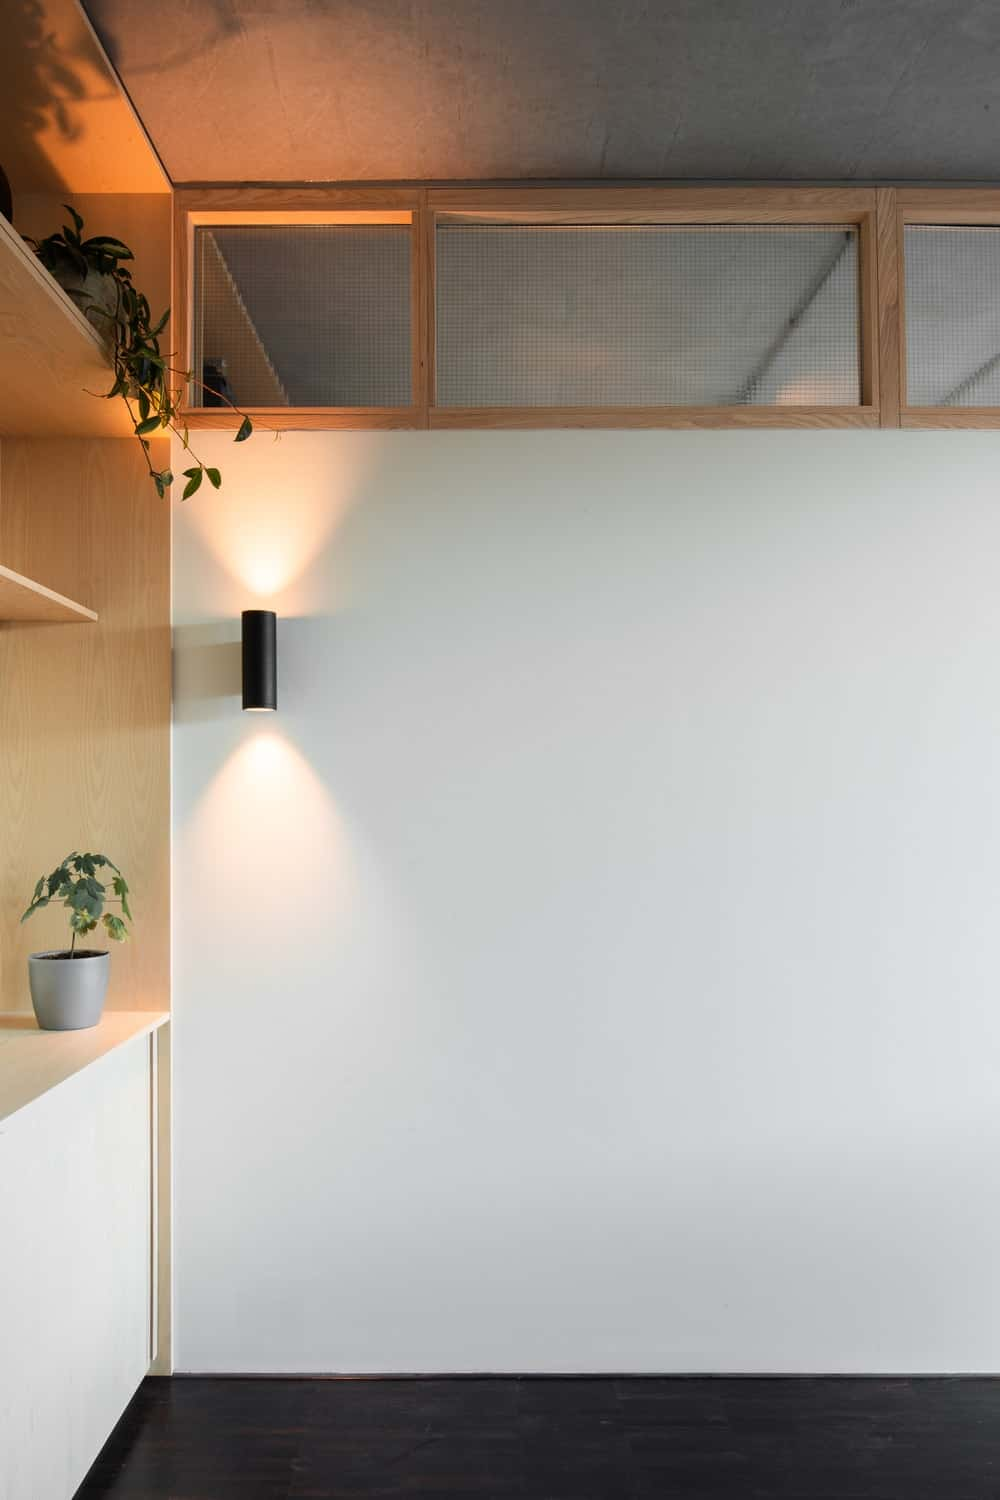 This area is lit with wall-mounted sconce that throws warm lighting downward and upward.